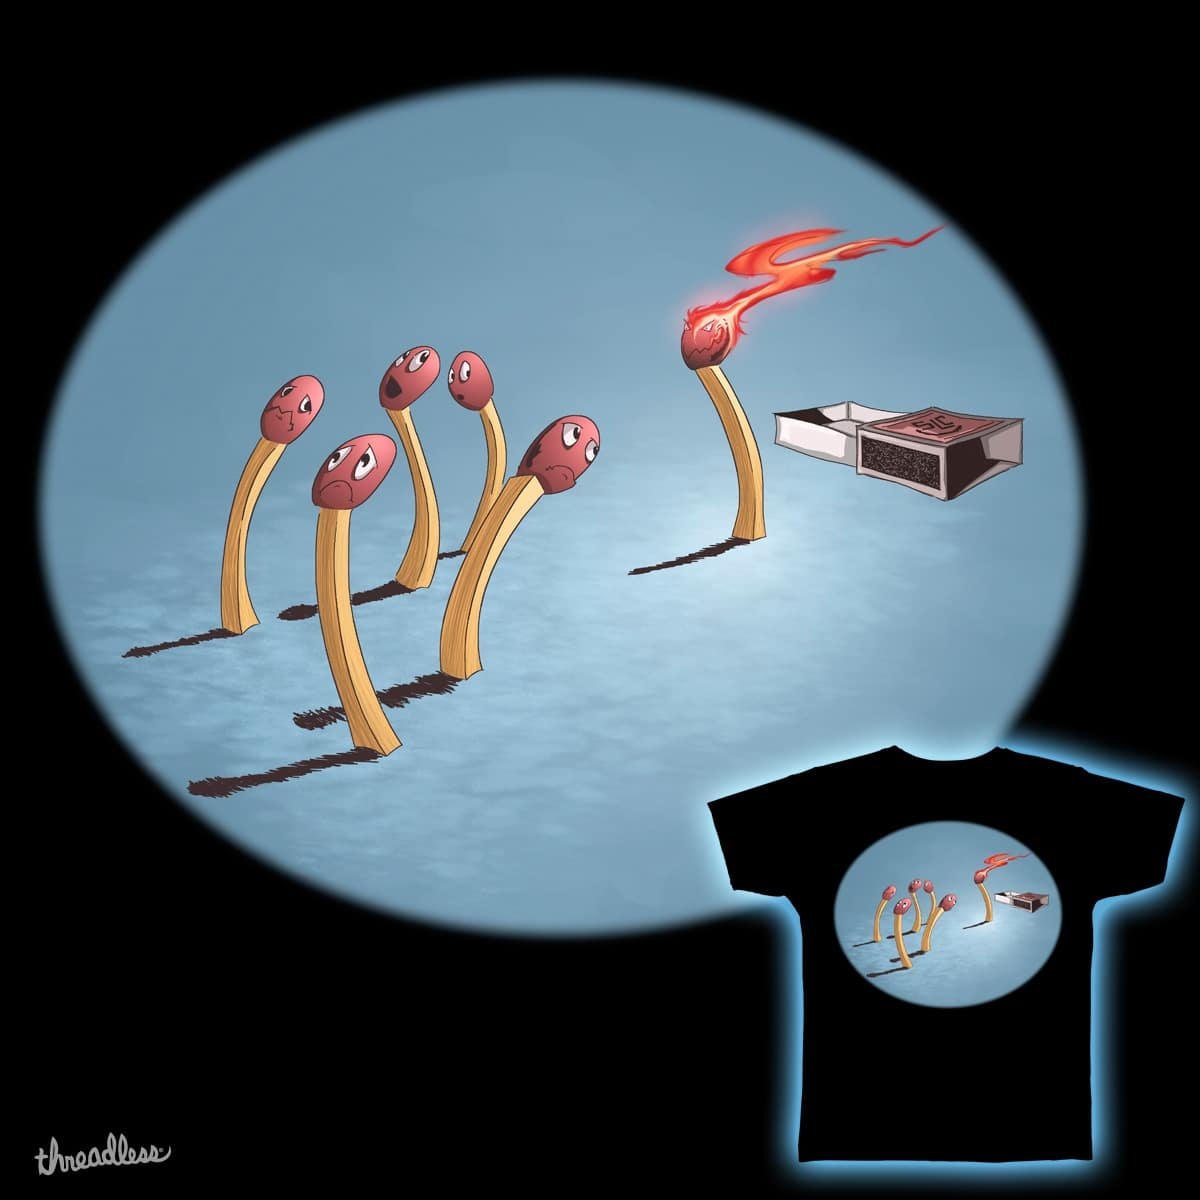 Playing With Fire by mrpsycho_slc on Threadless